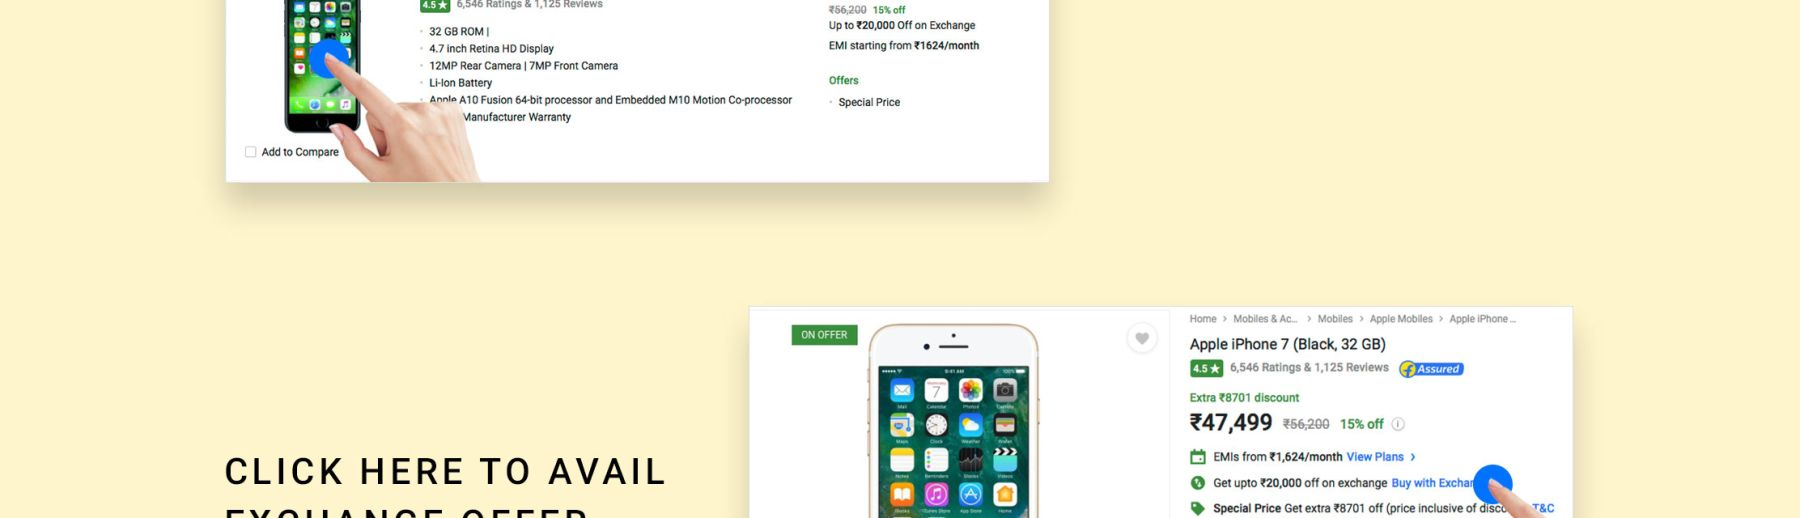 Mobile Exchange Offers - Exchange Your Old Mobile with Brand